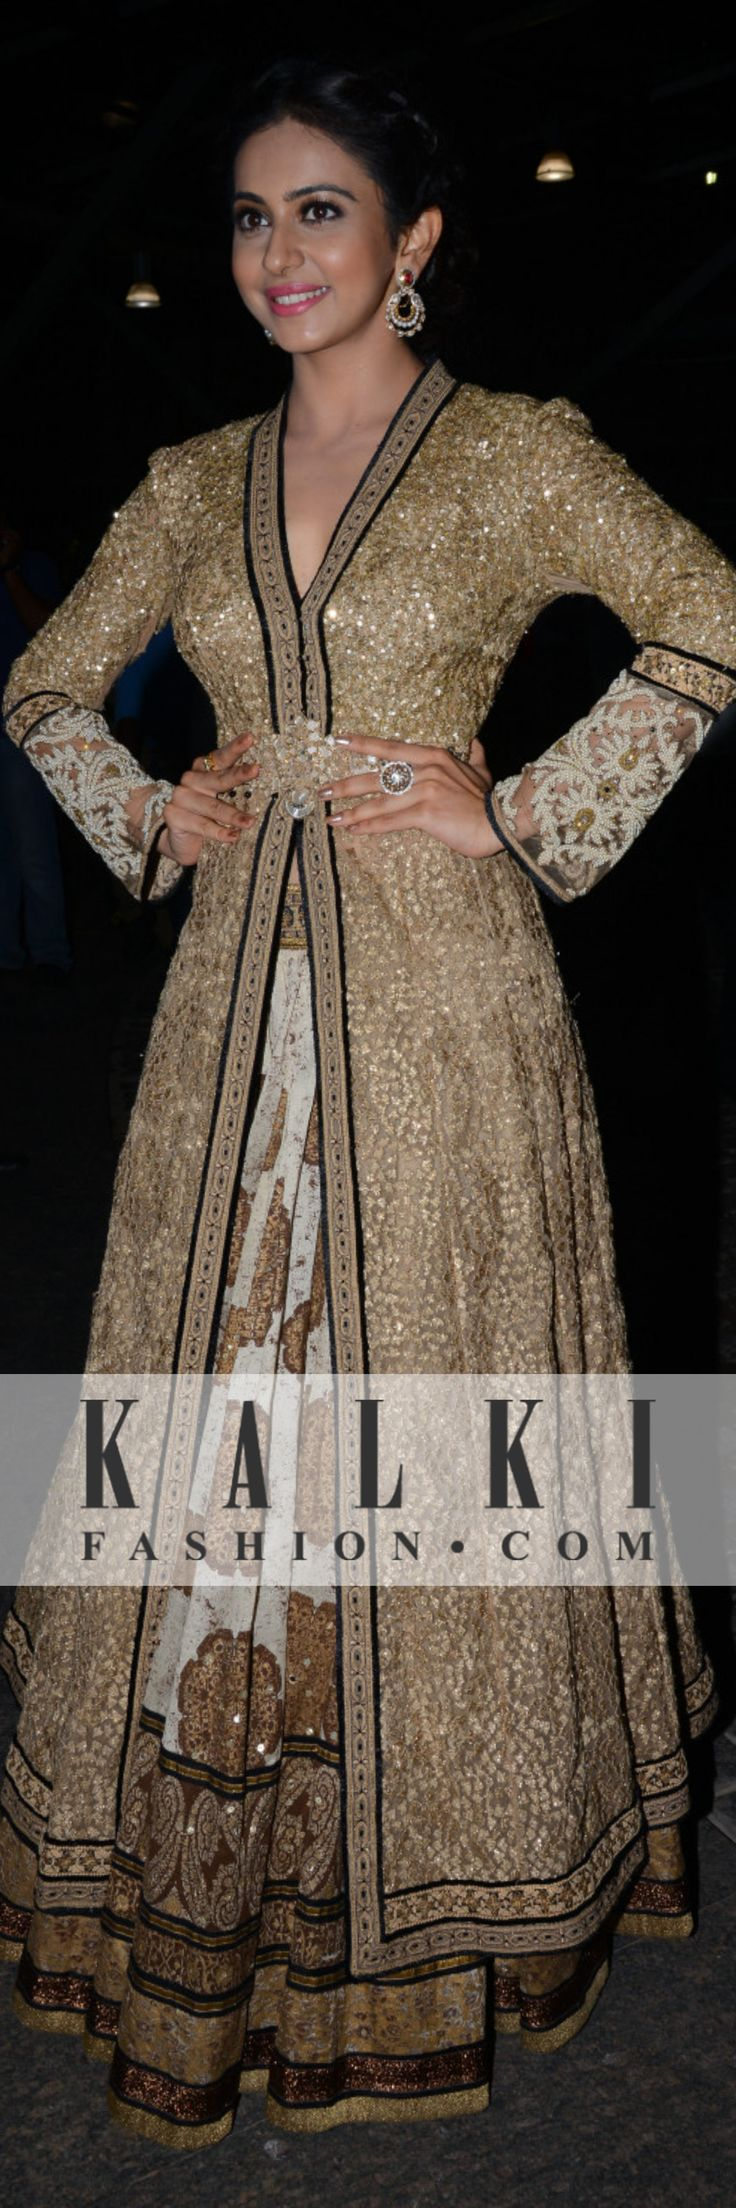 shinning in a gold anarkali is what took this diva to have all eyes look at her in awe